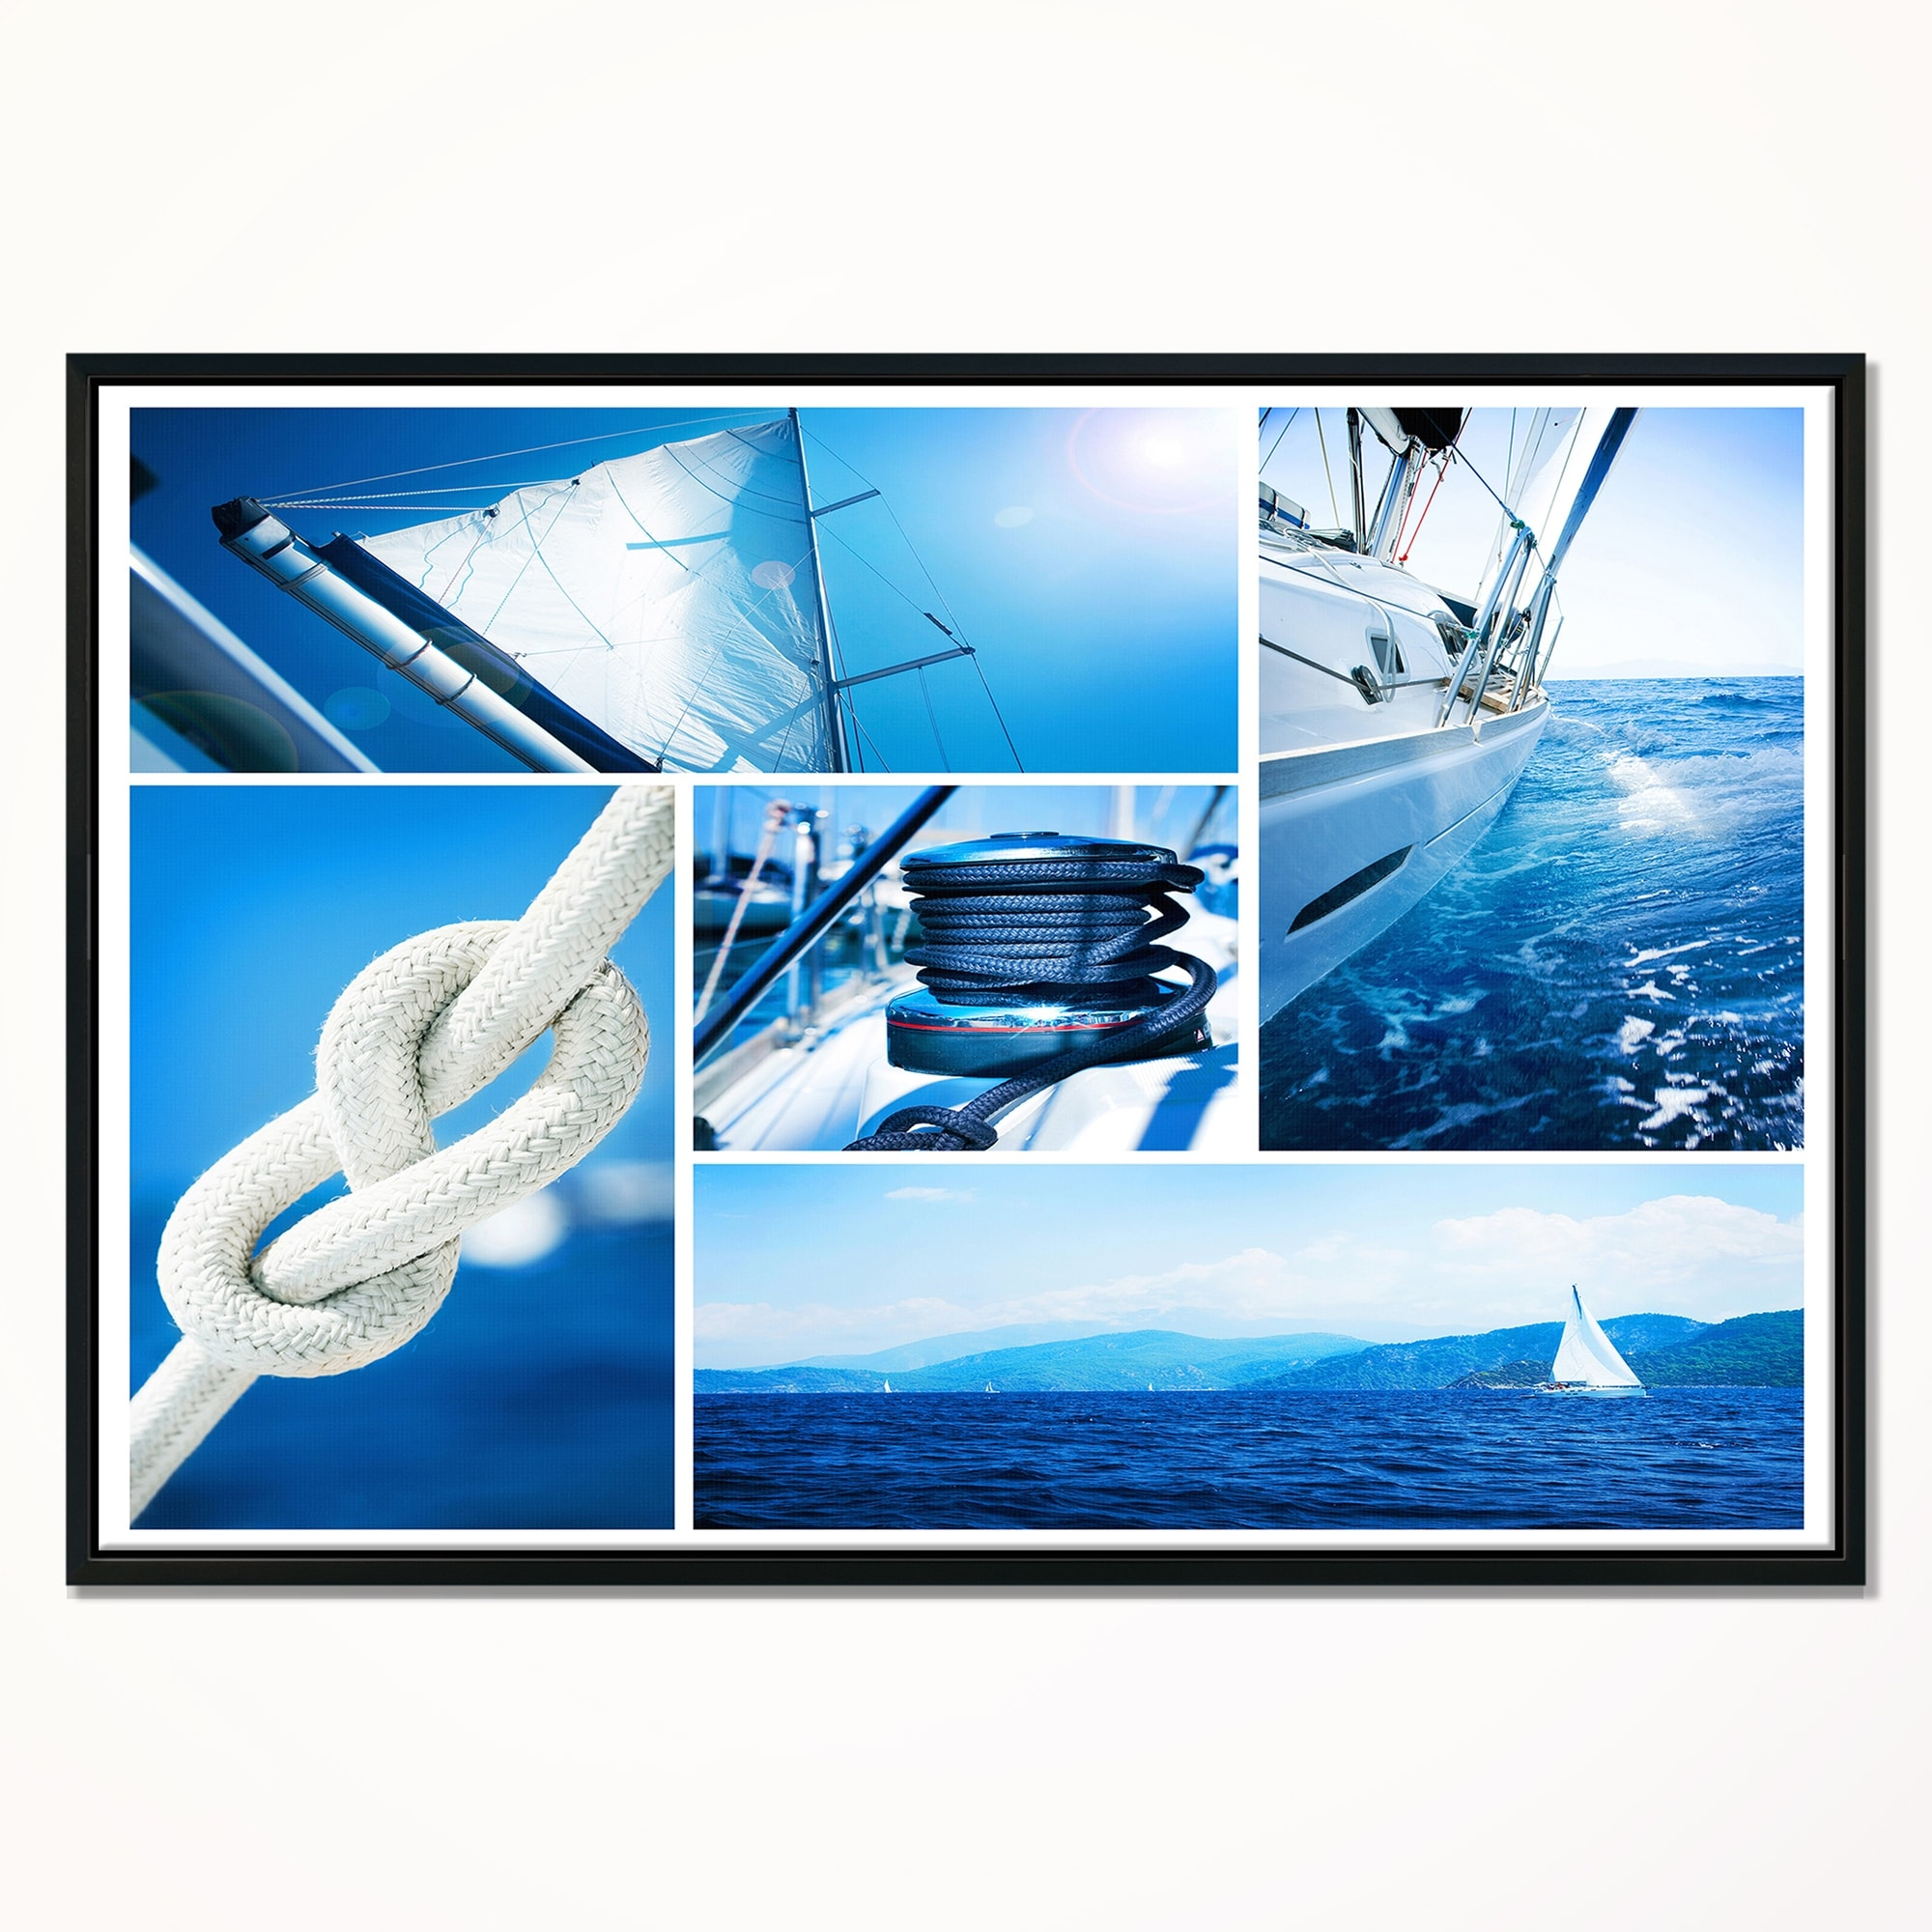 Designart Sailing Yacht In Blue Sea Collage Large Seashore Framed Canvas Wall Art Overstock 18959706